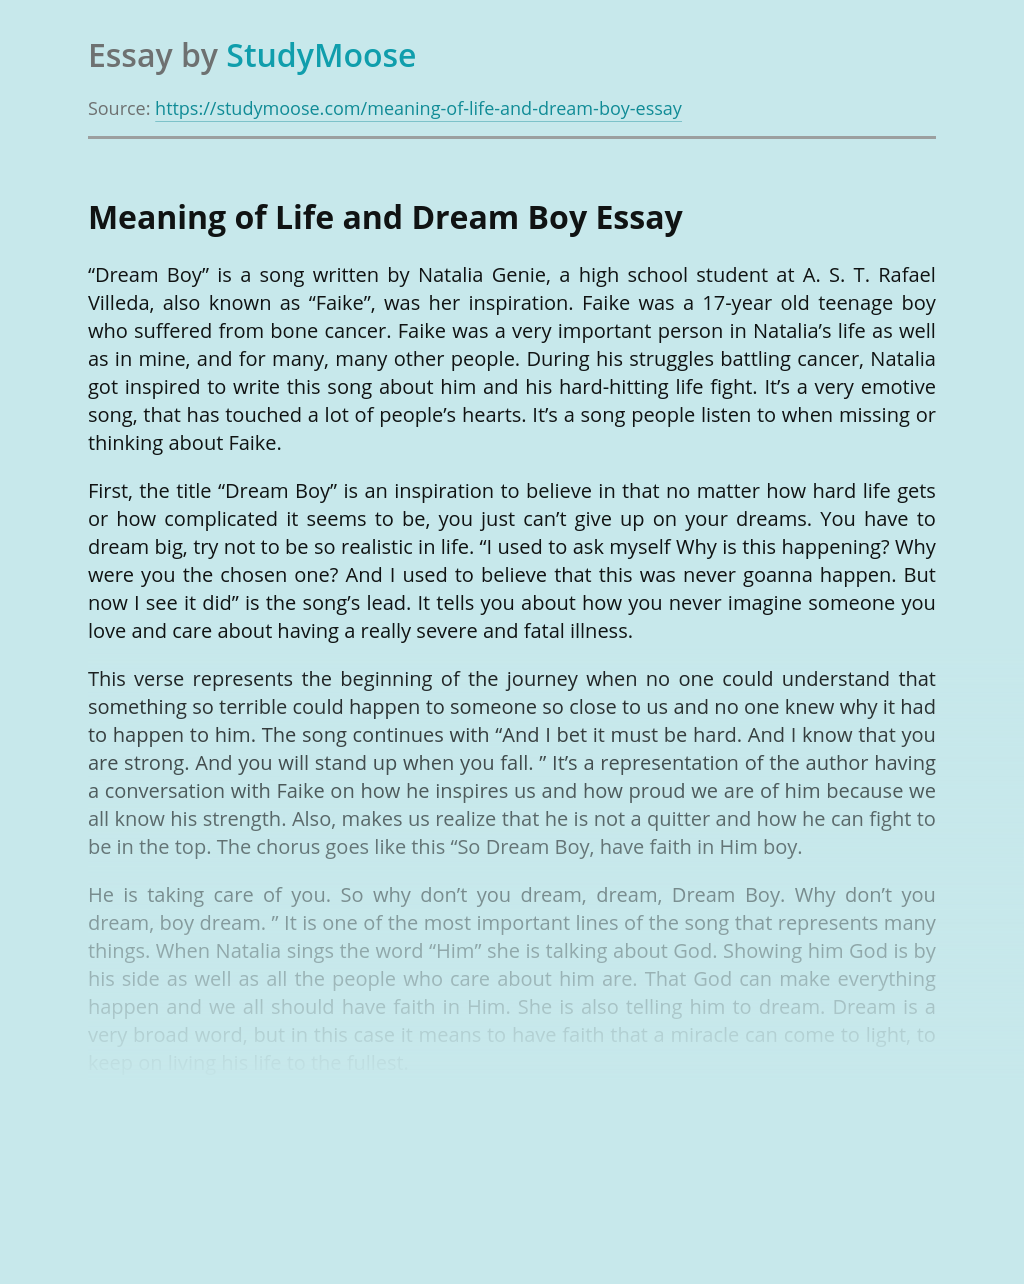 Meaning of Life and Dream Boy